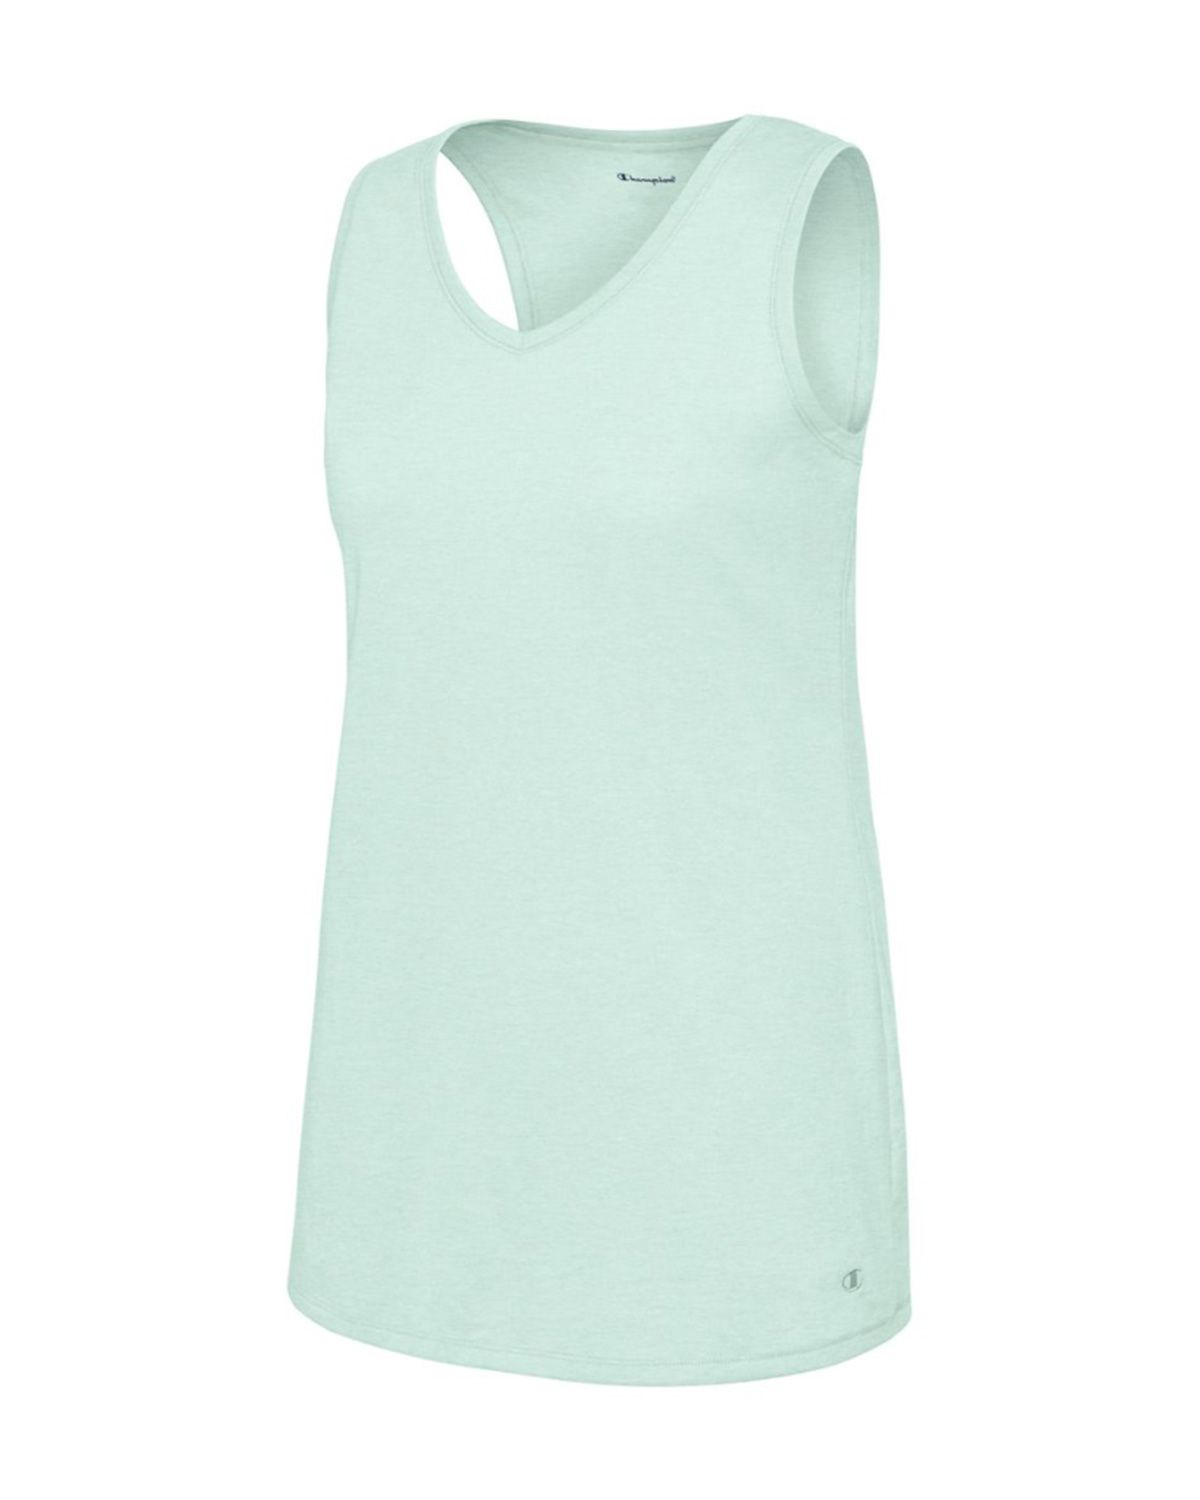 Champion W50062 Women's Vapor Cotton Tank - Steel Blue Heather - S #vapor